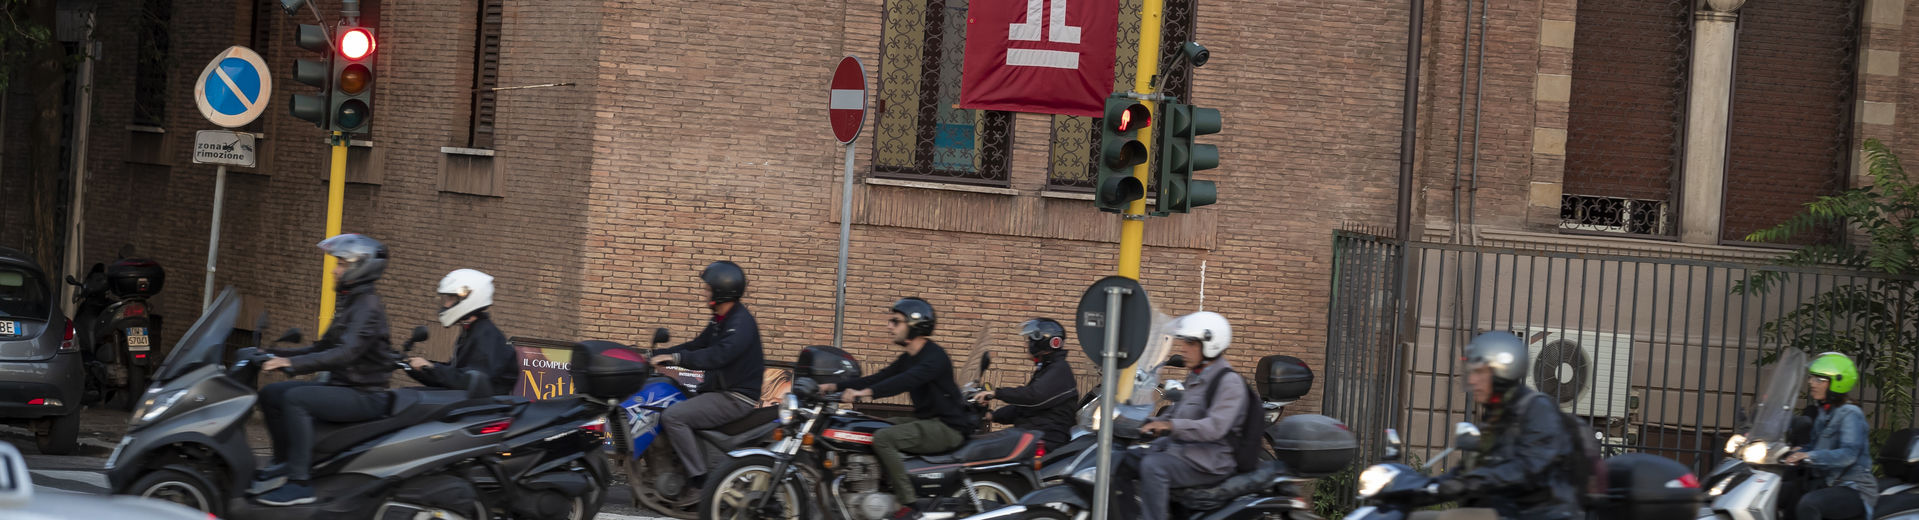 A group of people on motorcycles on an Italian street near Temple Rome.